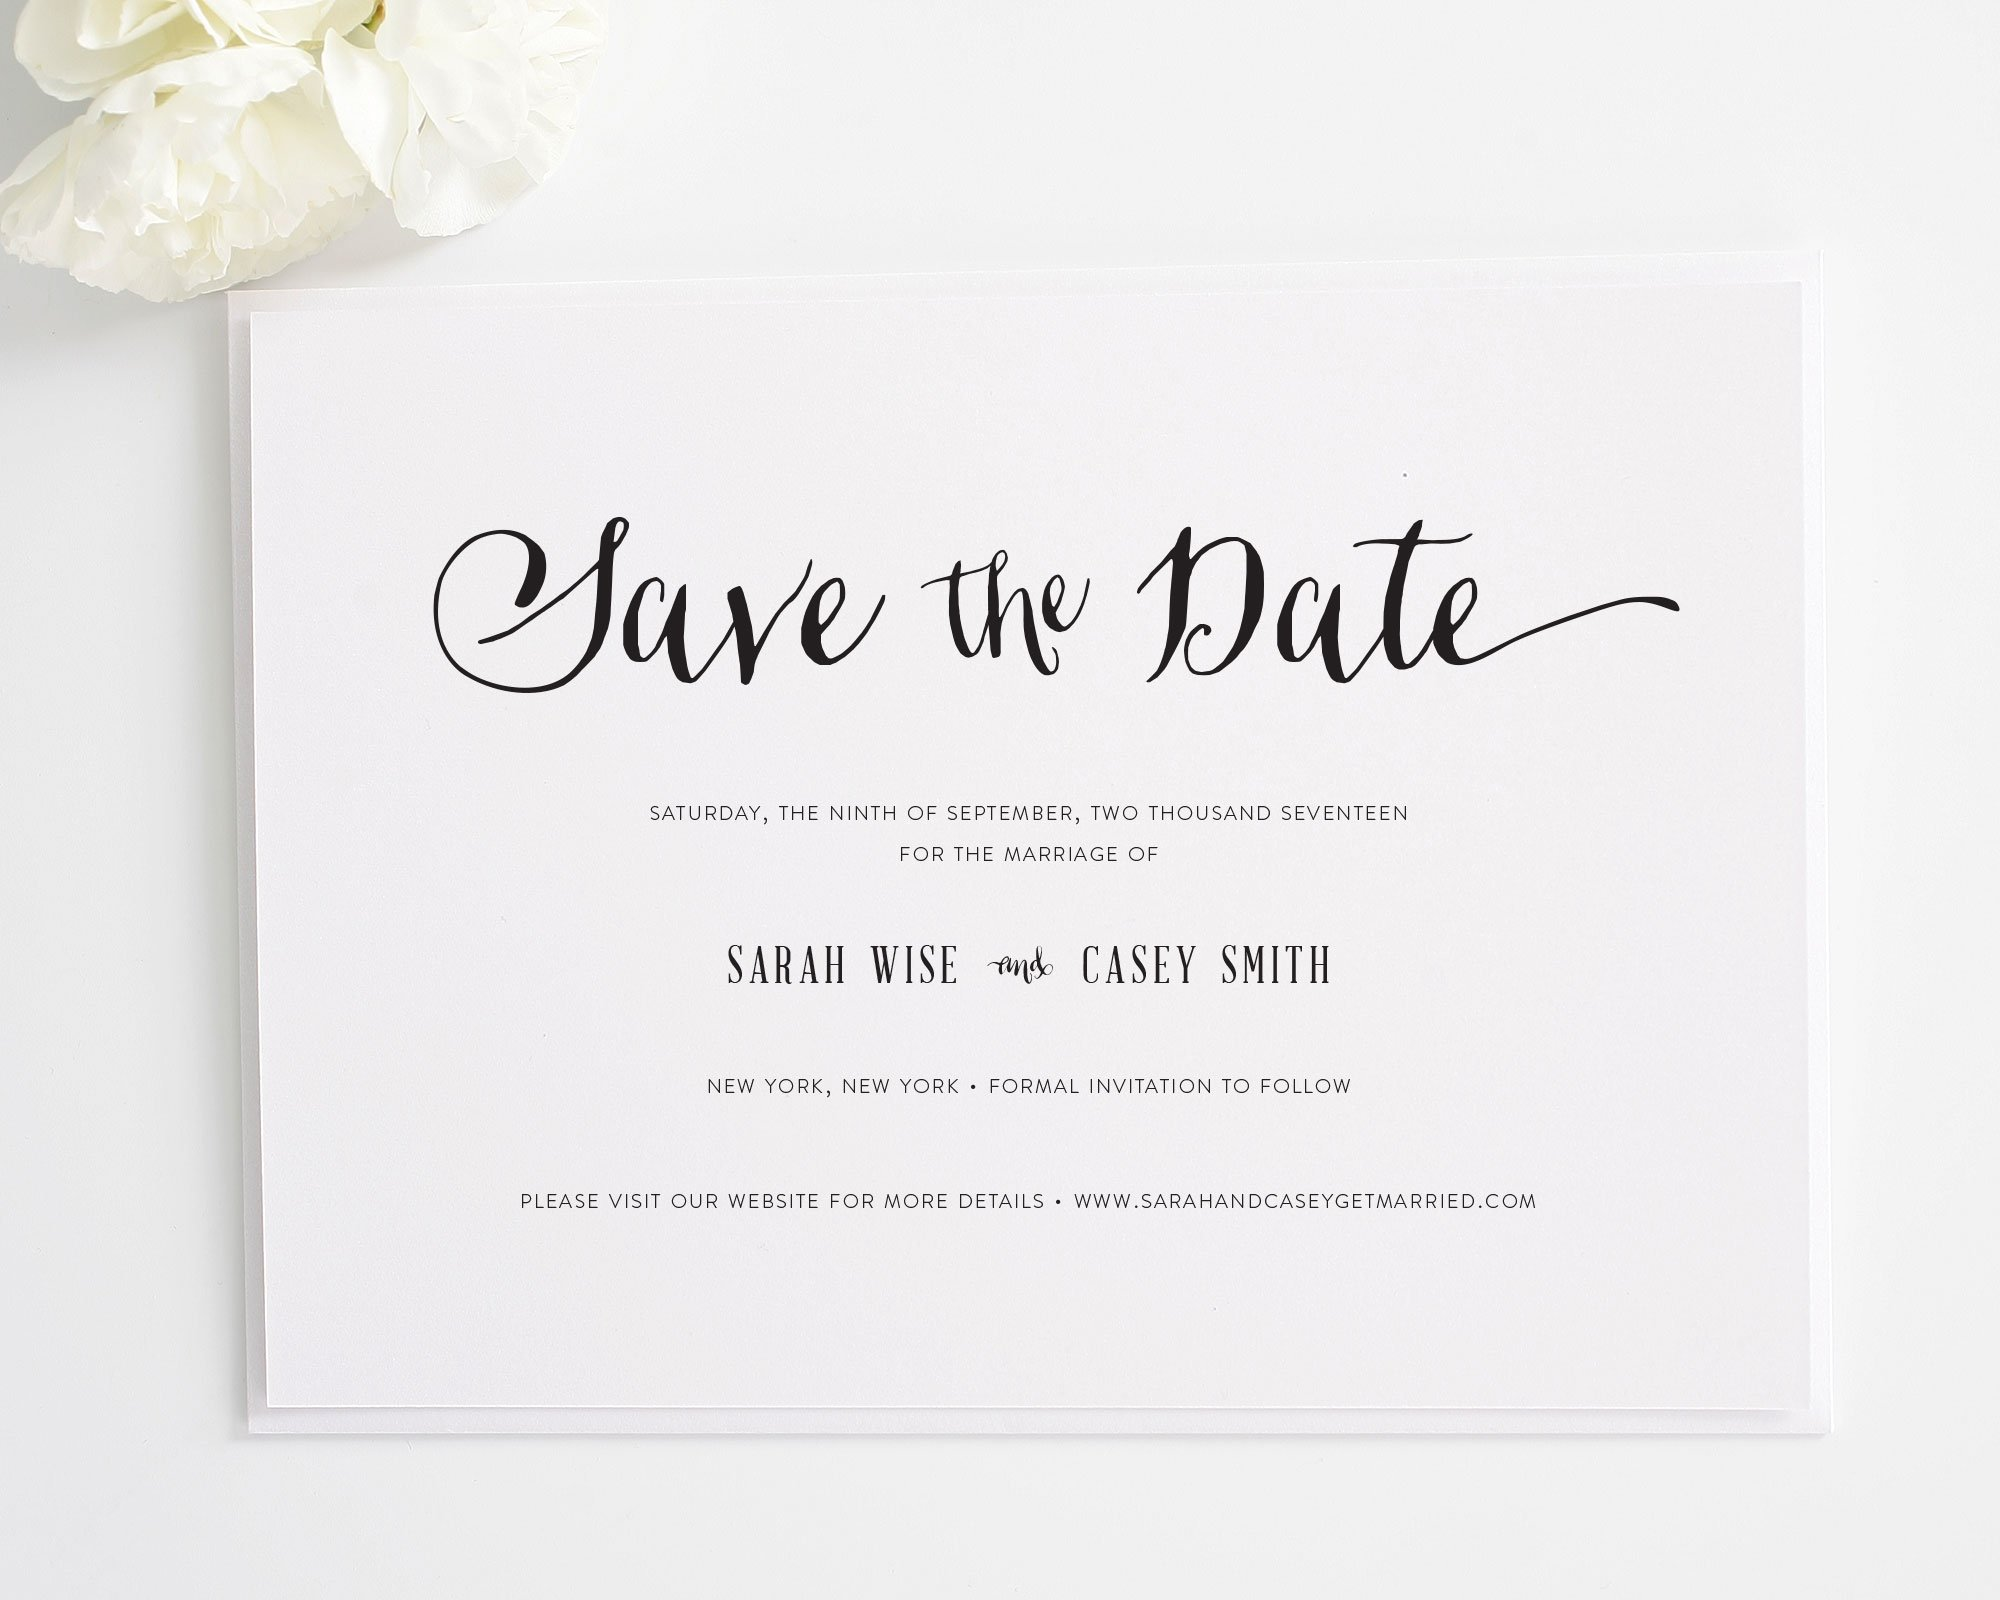 Stylish Script Save the Date Cards - Save the Date Cards by Shine